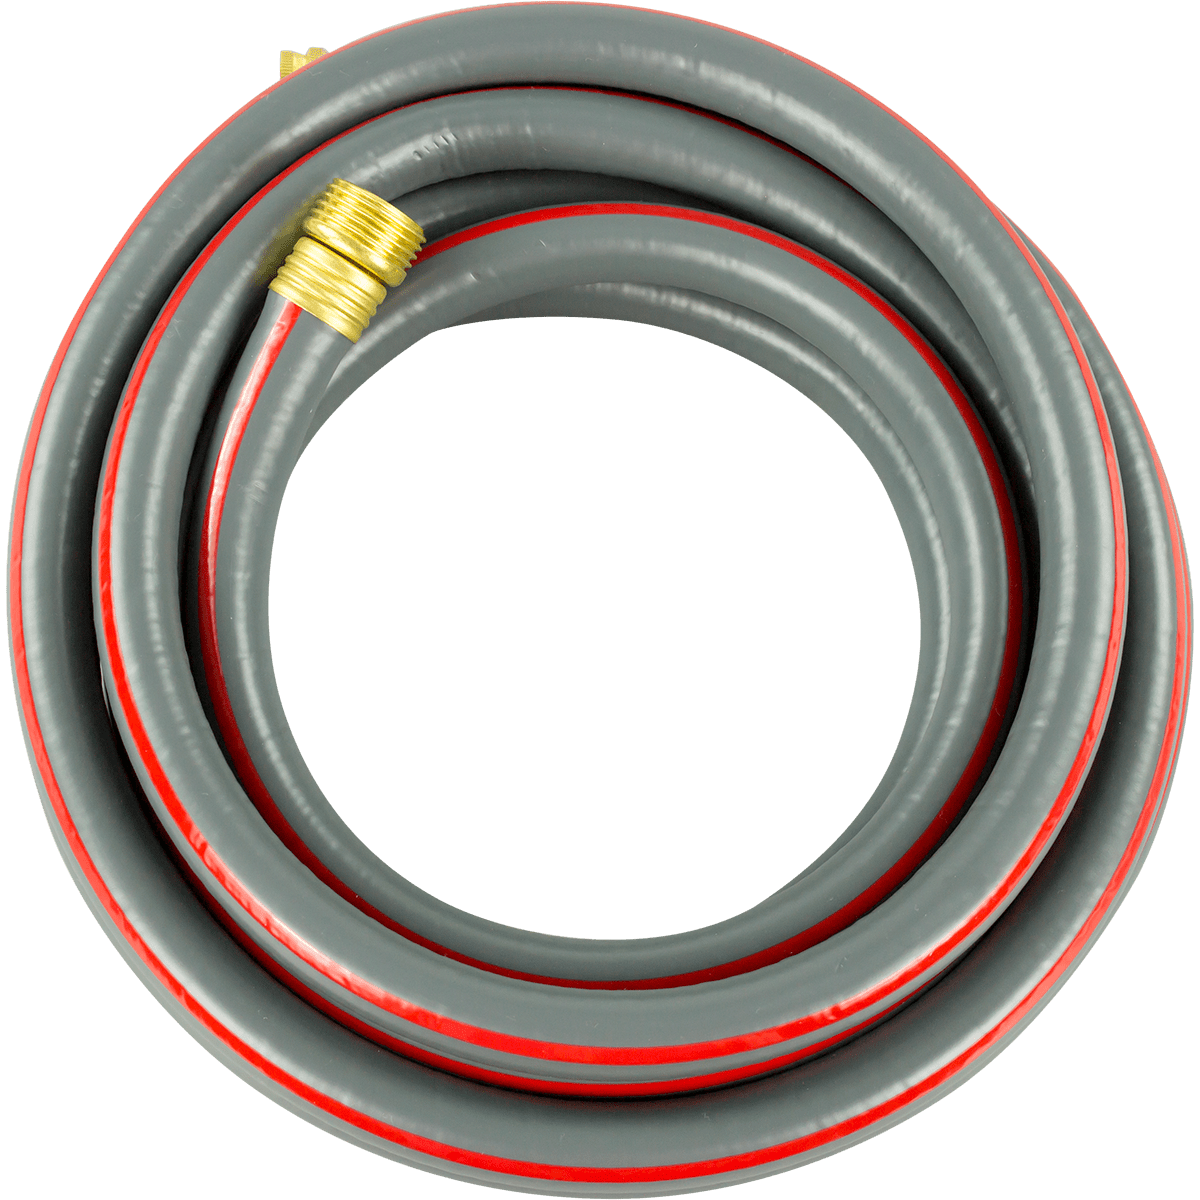 Apex Garden Hose Remnant - 5/8in. X 15ft. (rem-15)